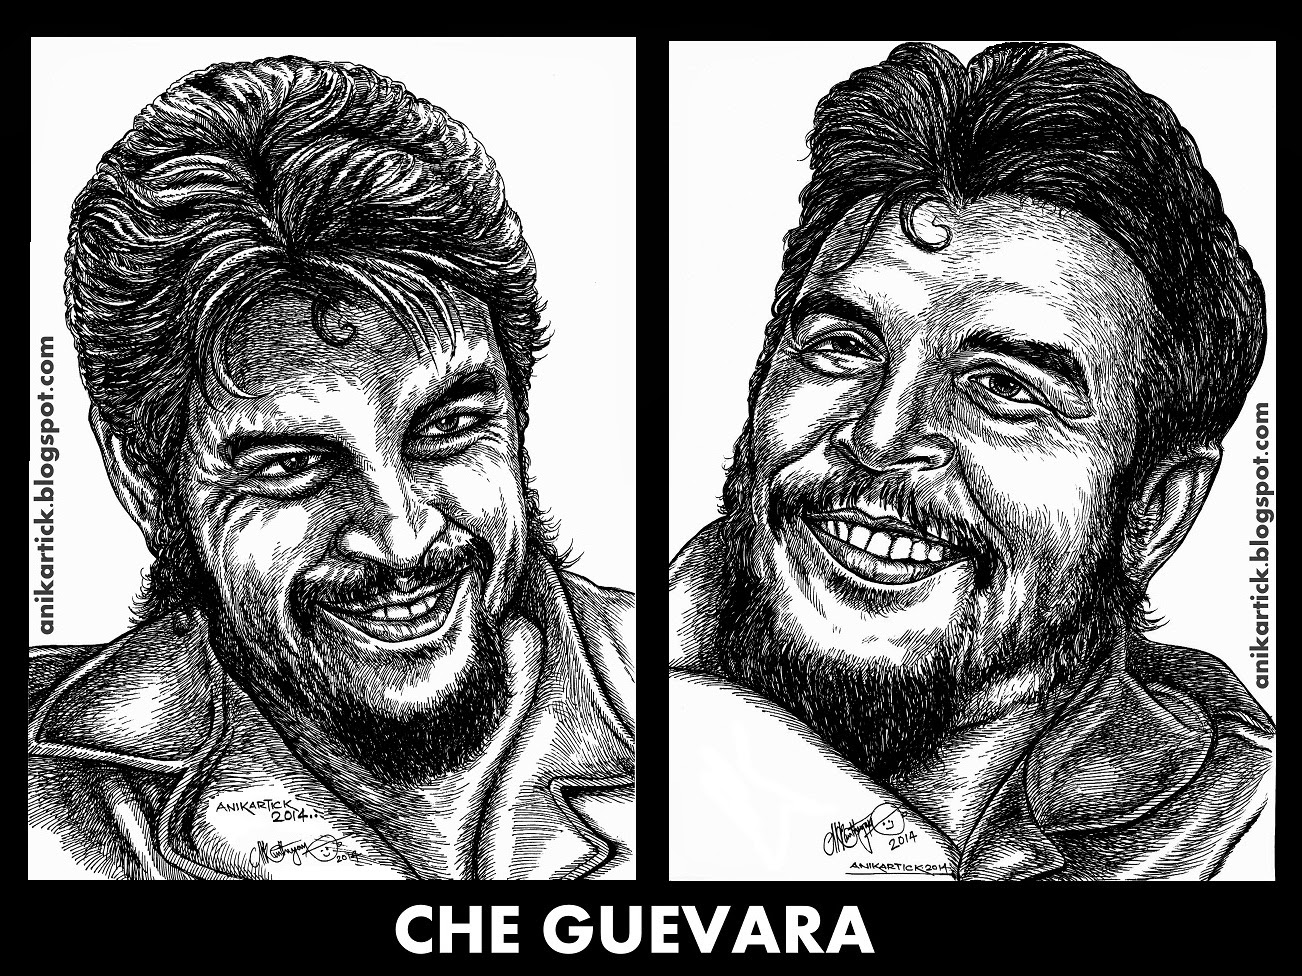 che guevara art drawing sketch illustration pen and ink drawing che guevara art drawing sketch illustration pen and ink drawing portrait leader portraits legend masters ani art chennai tamil nadu oviyan